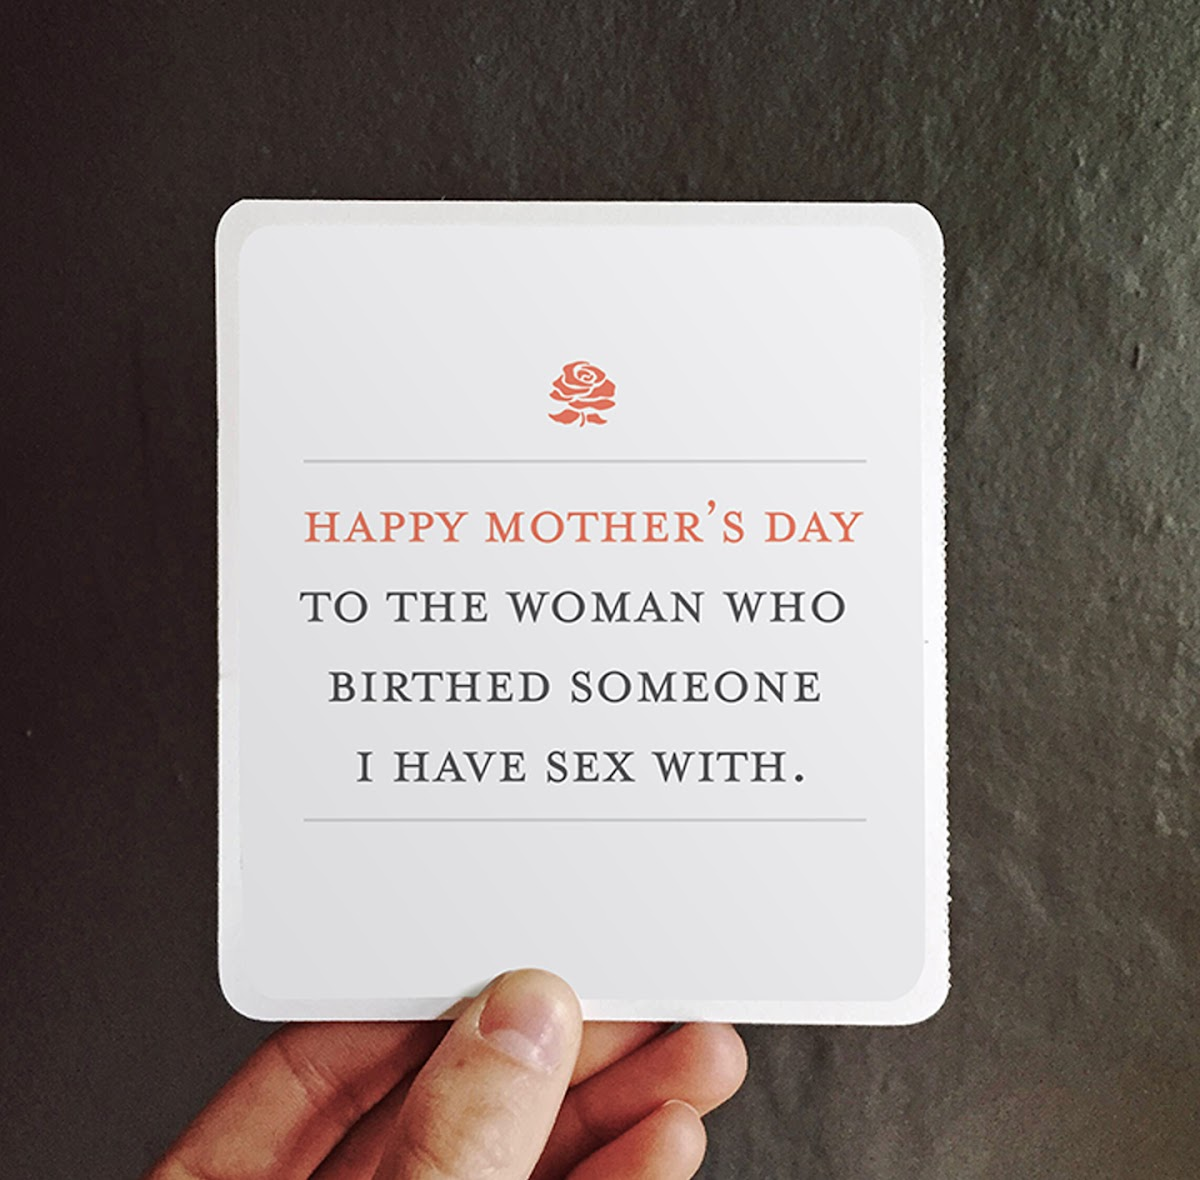 Felt Introduces The Must Have Humourous Mother-in-Law Card Collection for Mother's Day